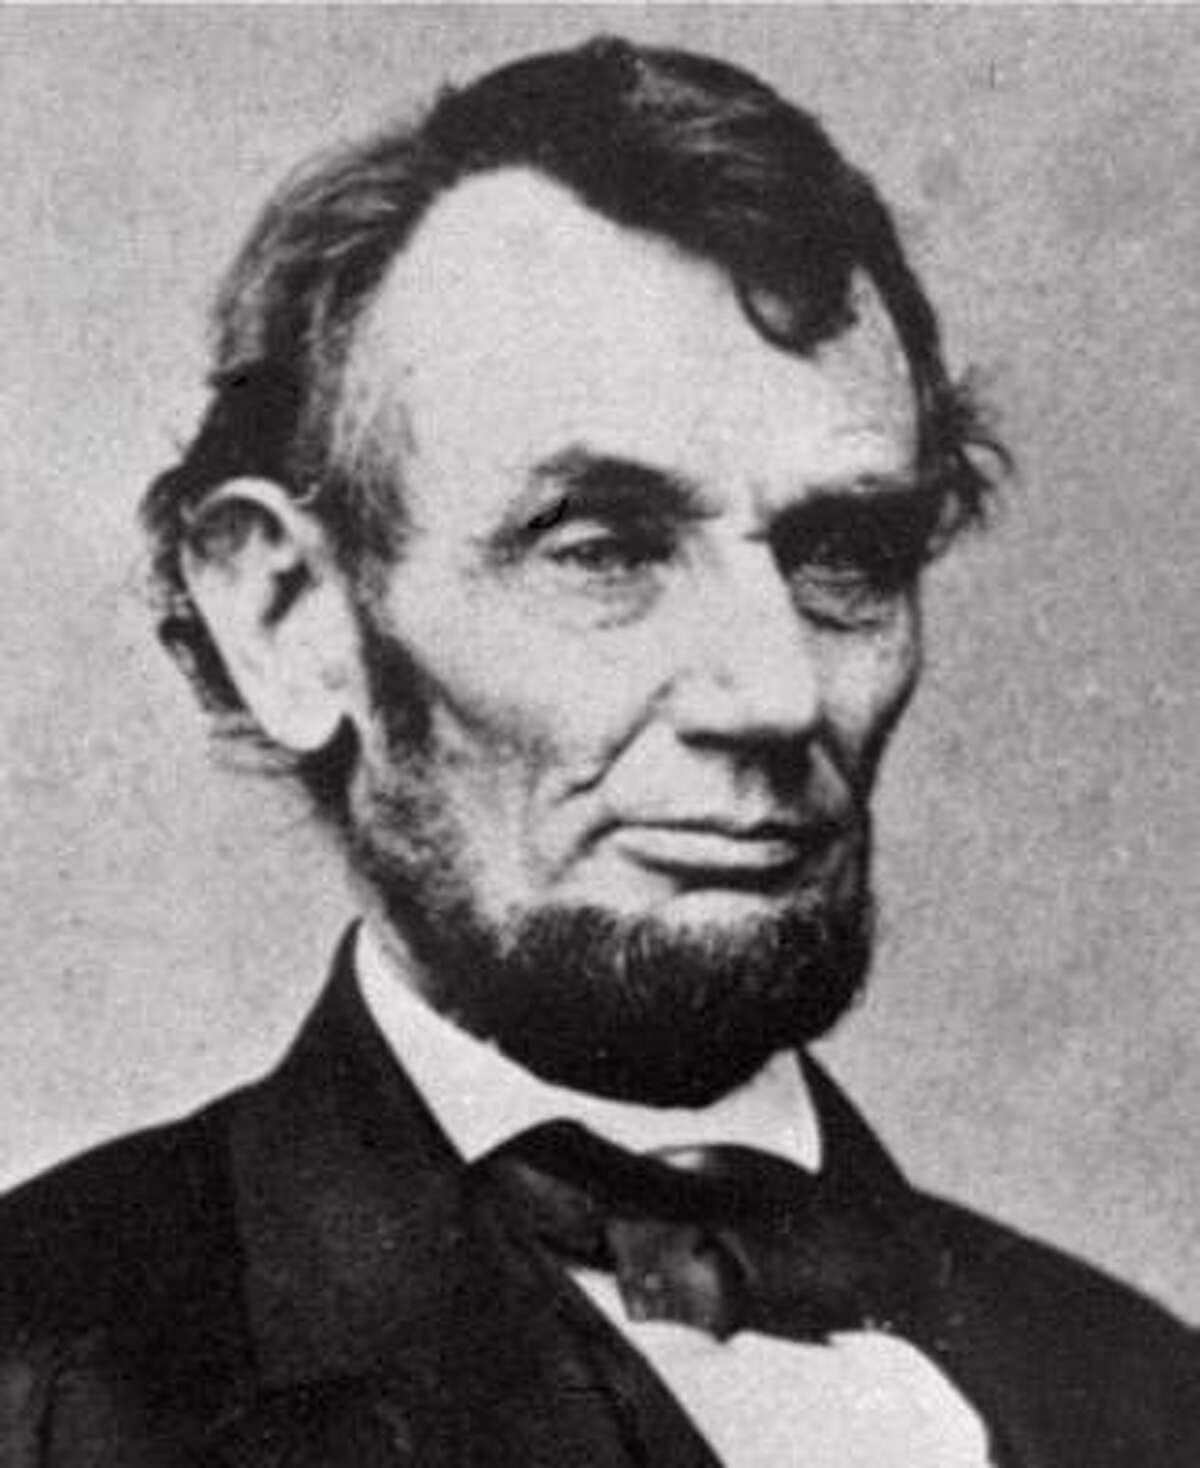 1. Abraham Lincoln , president from 1861-1865